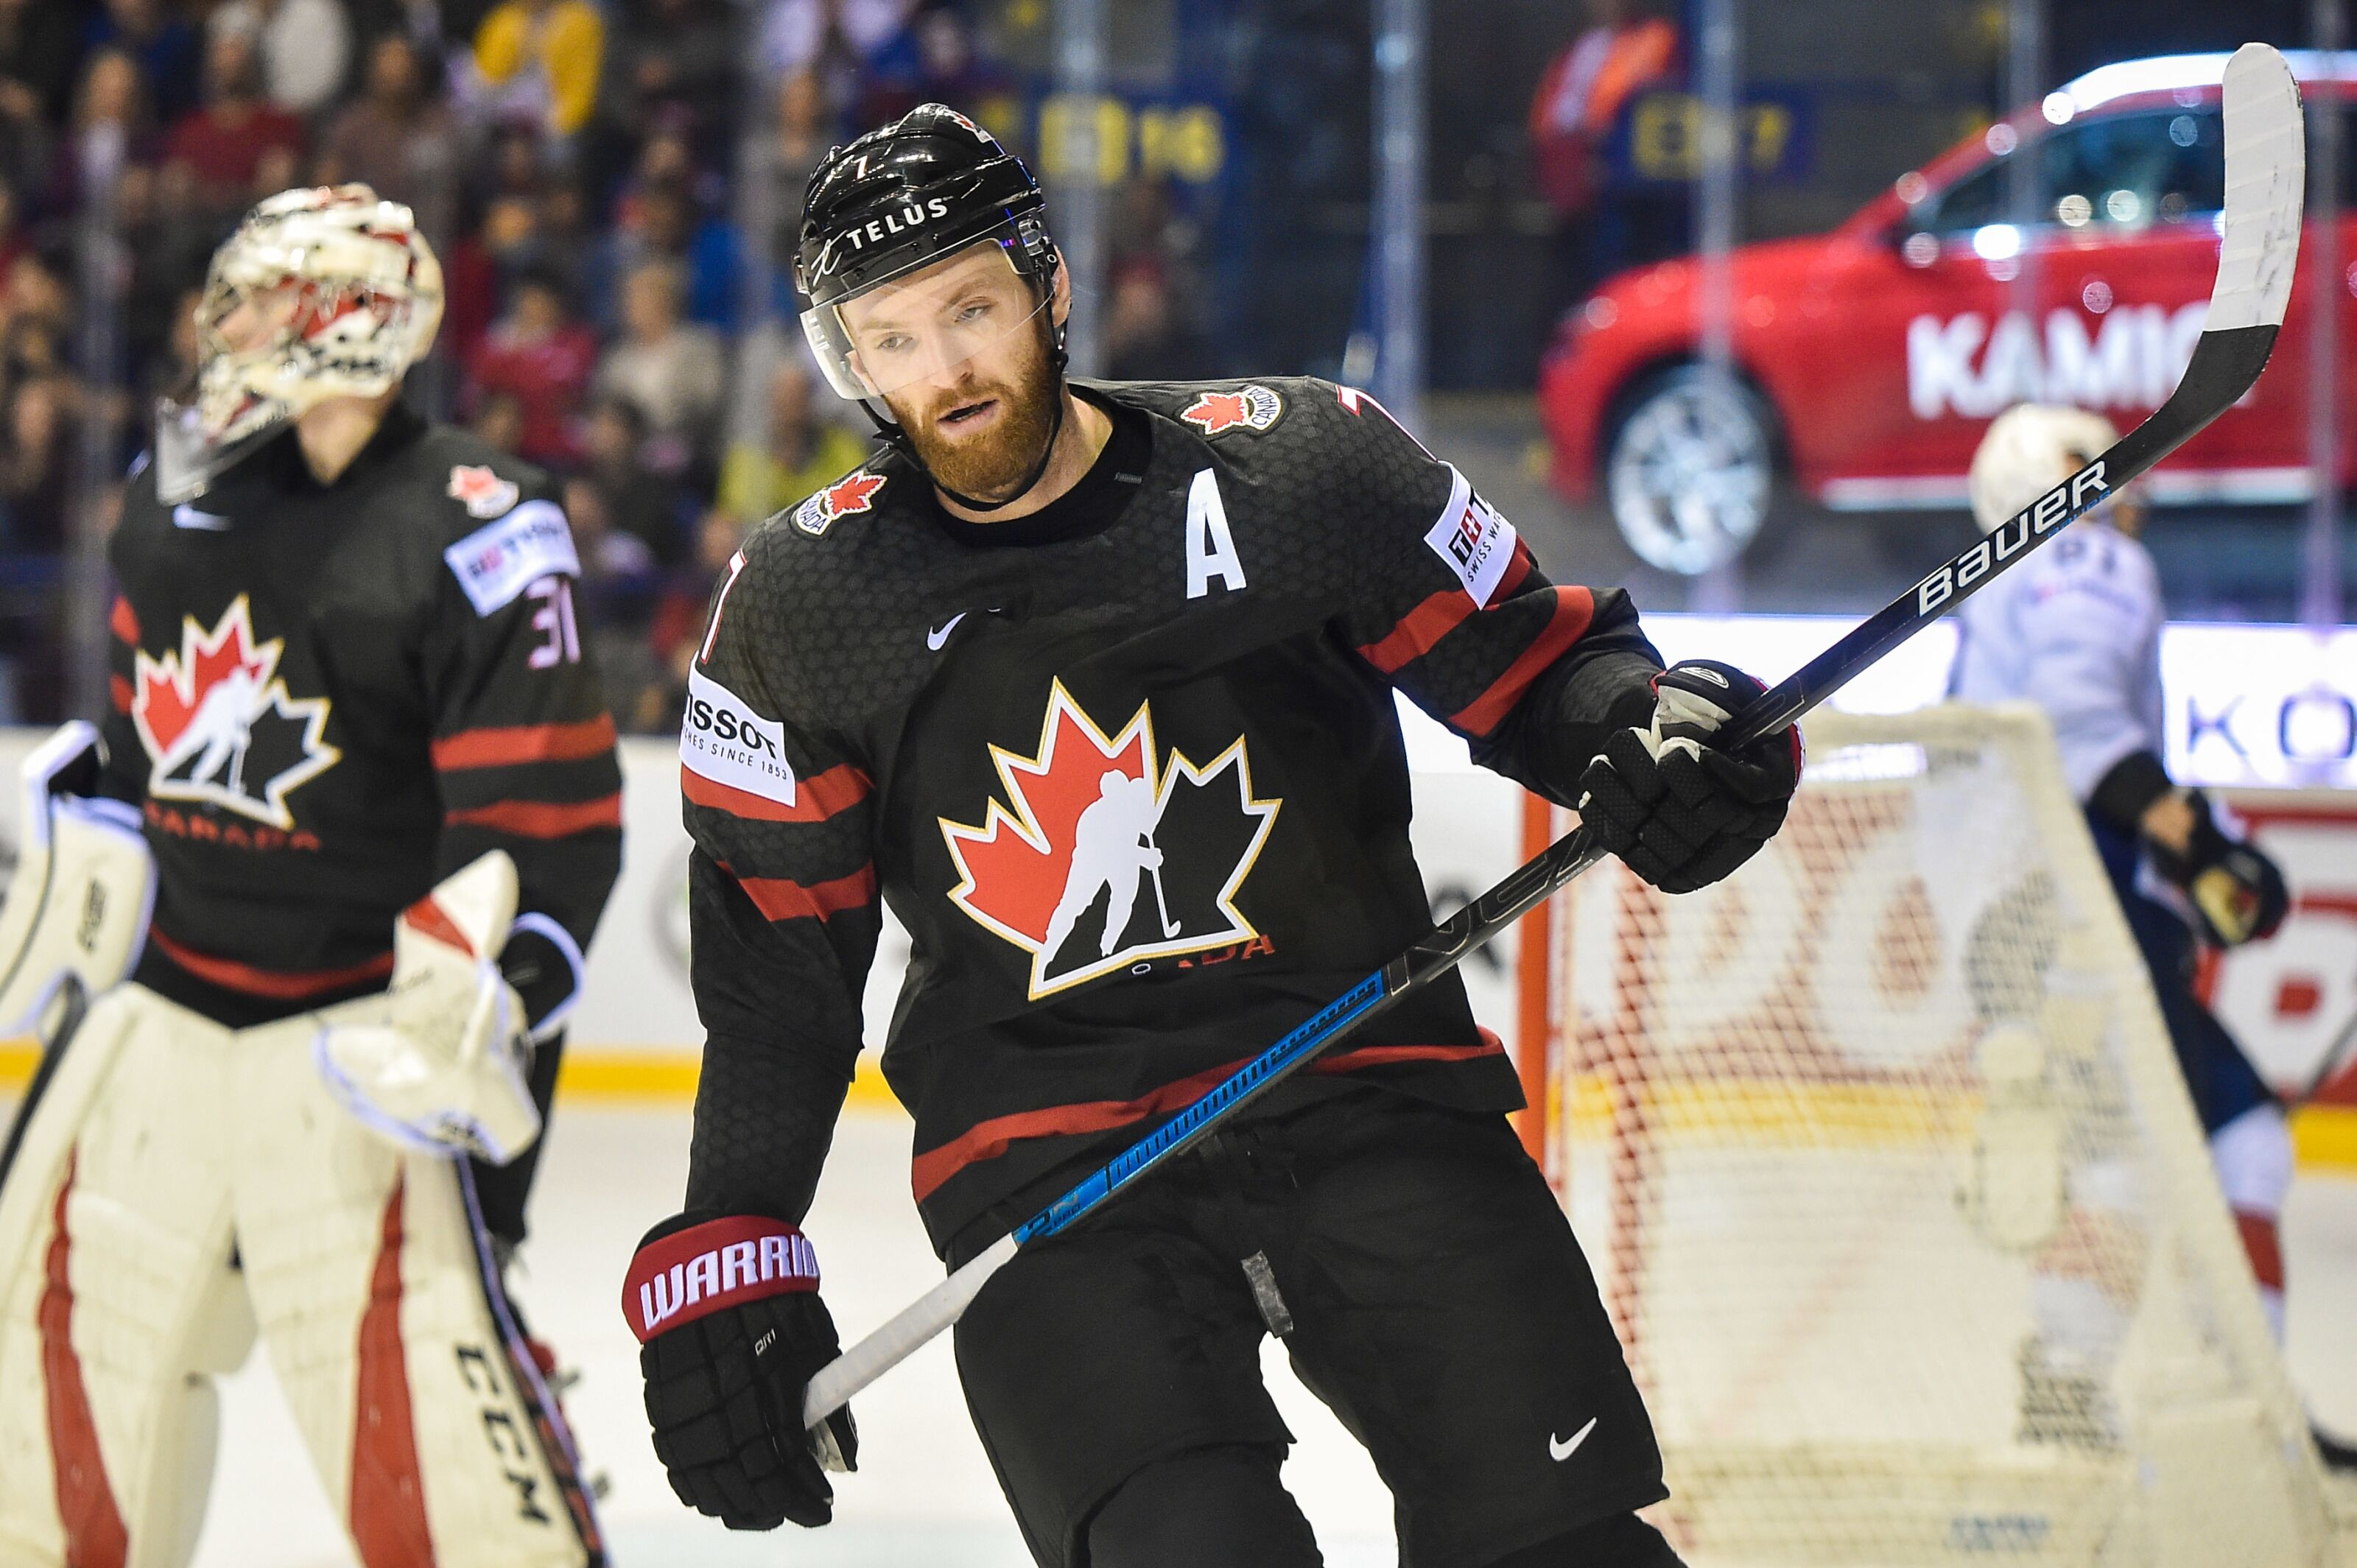 Weekly Buzz: World Championships and OHL Titles For The Flyers